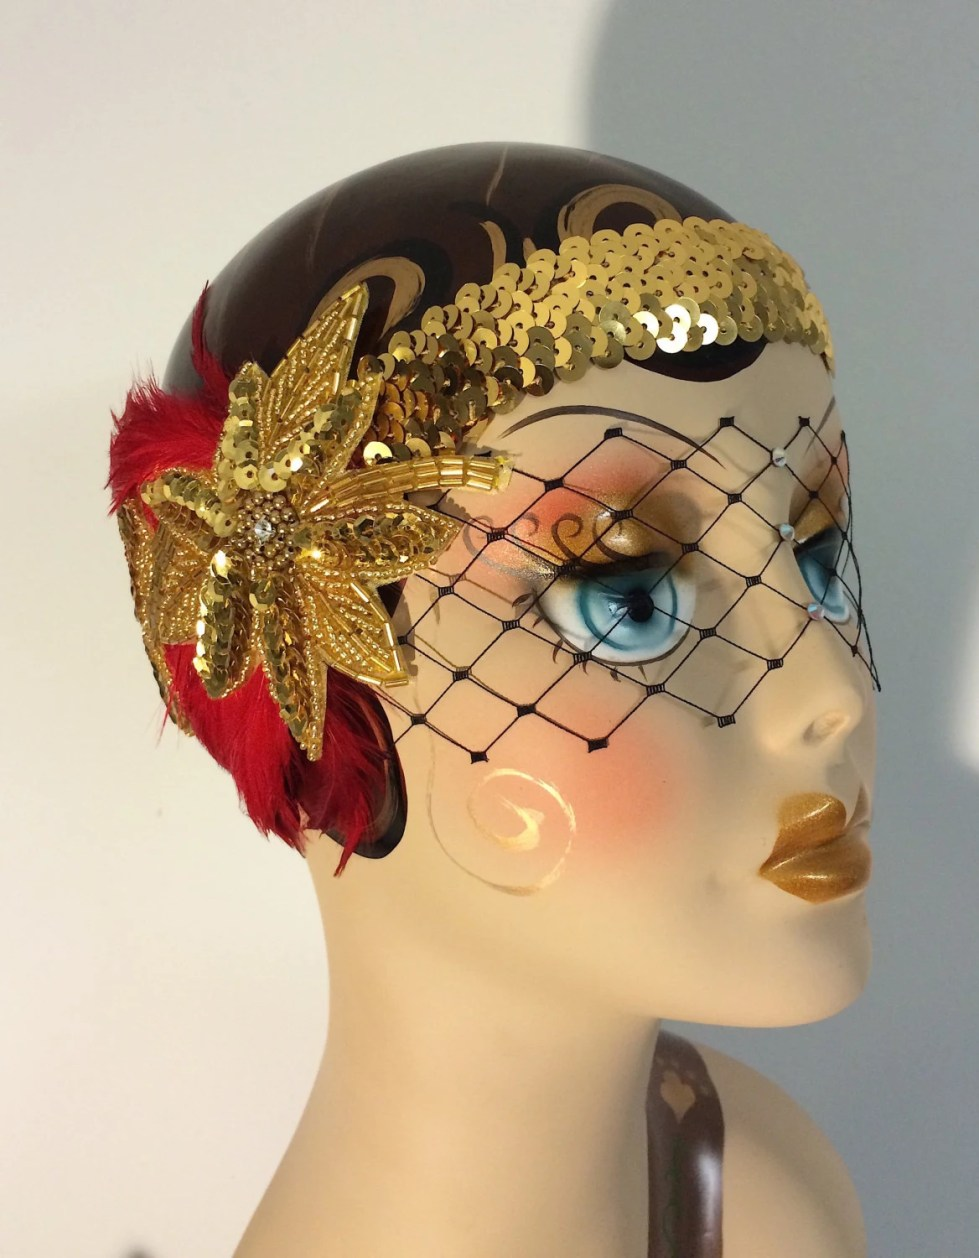 Art Deco Flapper Headband, Great Gatsby Headband, Flapper Headband, Headband, 1920s Head Piece, Art Deco Headband, Red and Gold